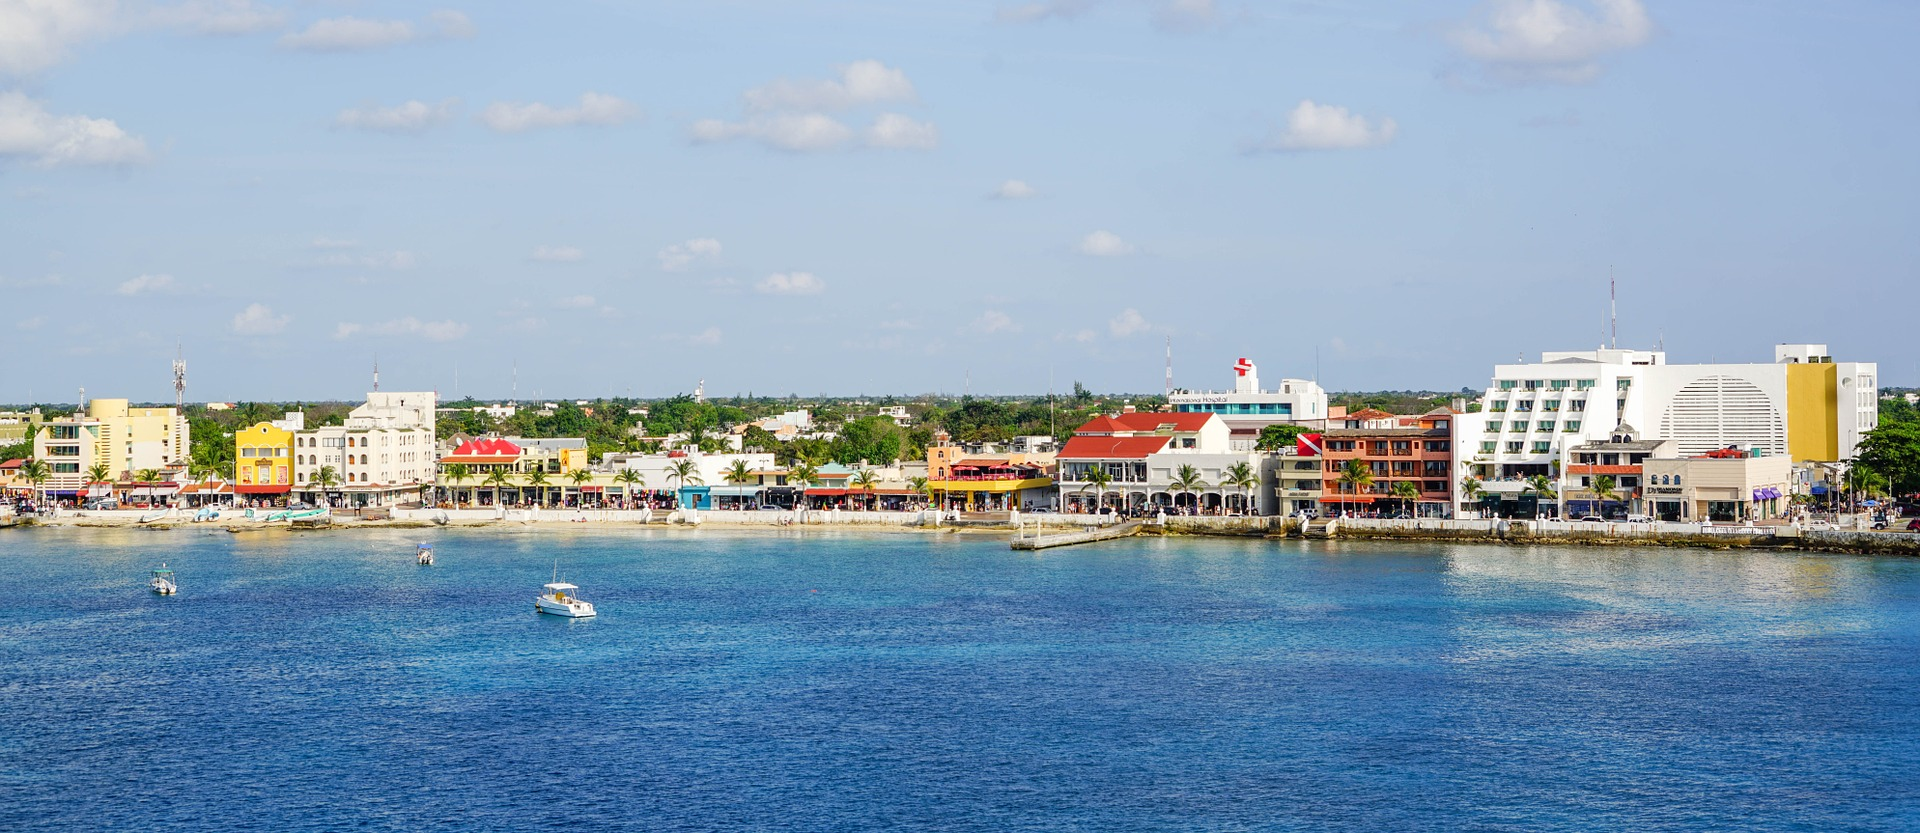 Where to stay on Cozumel - accommodations